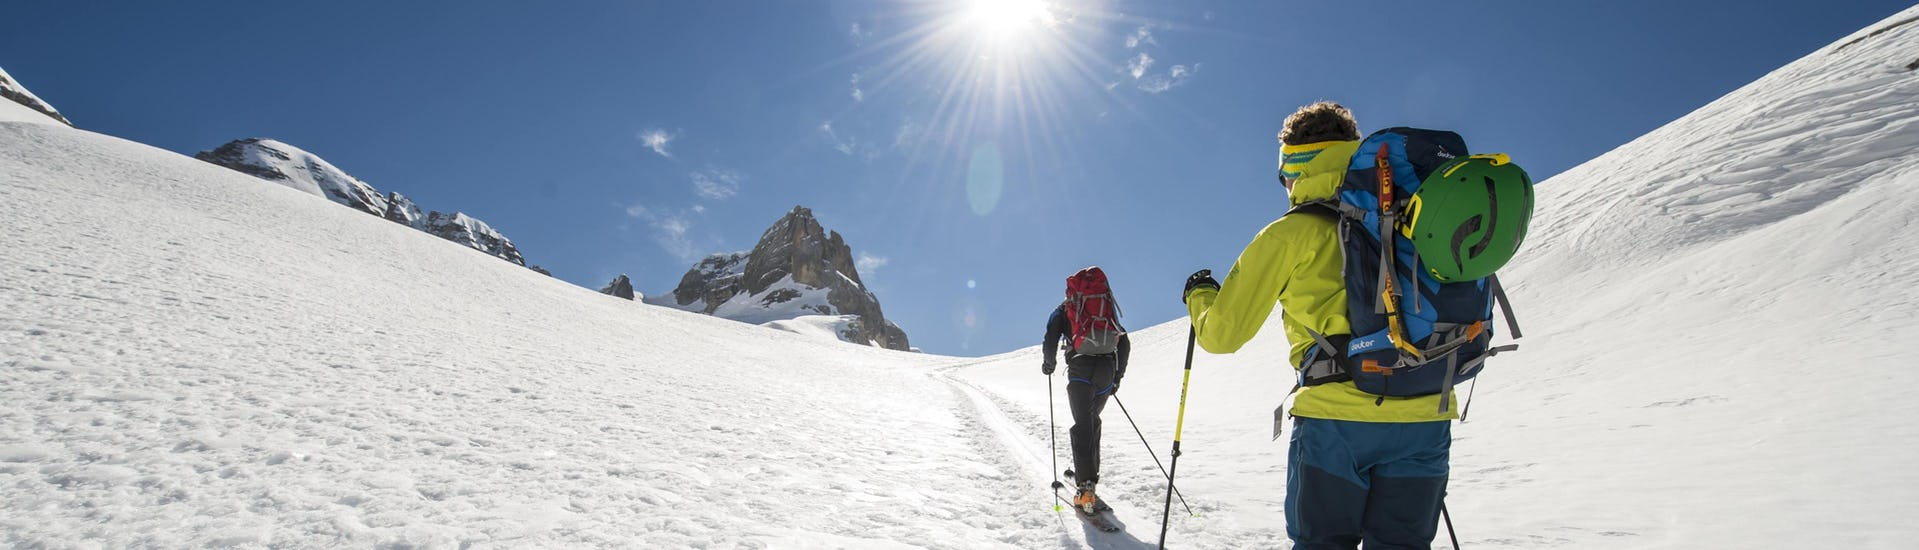 A ski touring guide is guiding another skier to the mountain summit while on a ski tour in the ski resort of Winterberg.